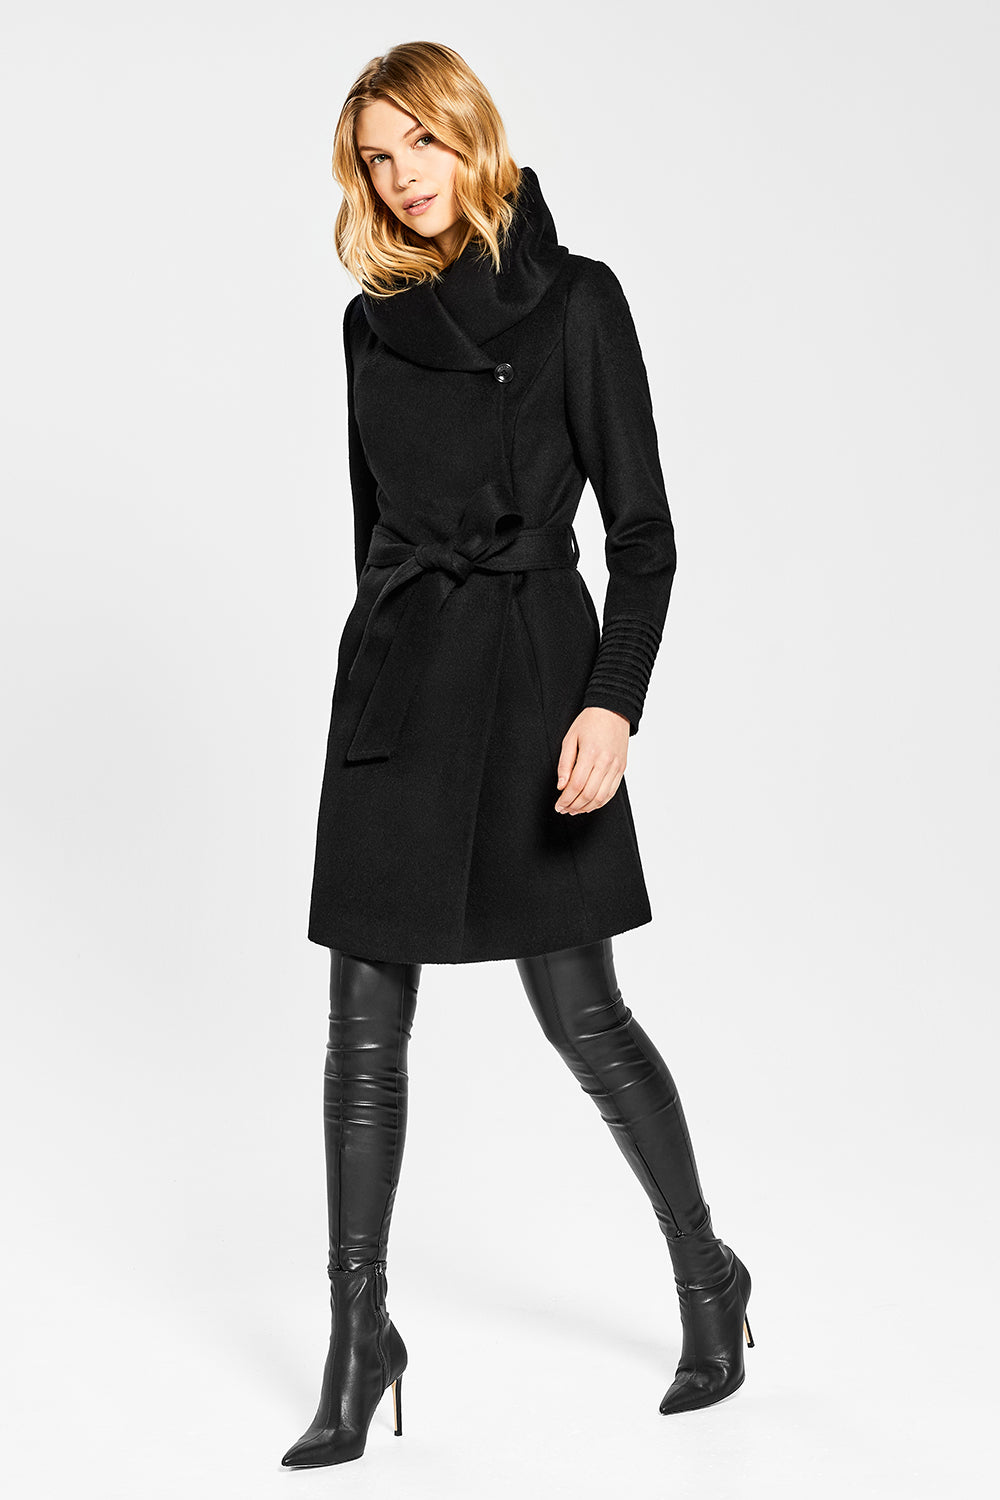 Sentaler Mid Length Hooded Wrap Coat featured in Baby Alpaca and available in Black. Seen in action.